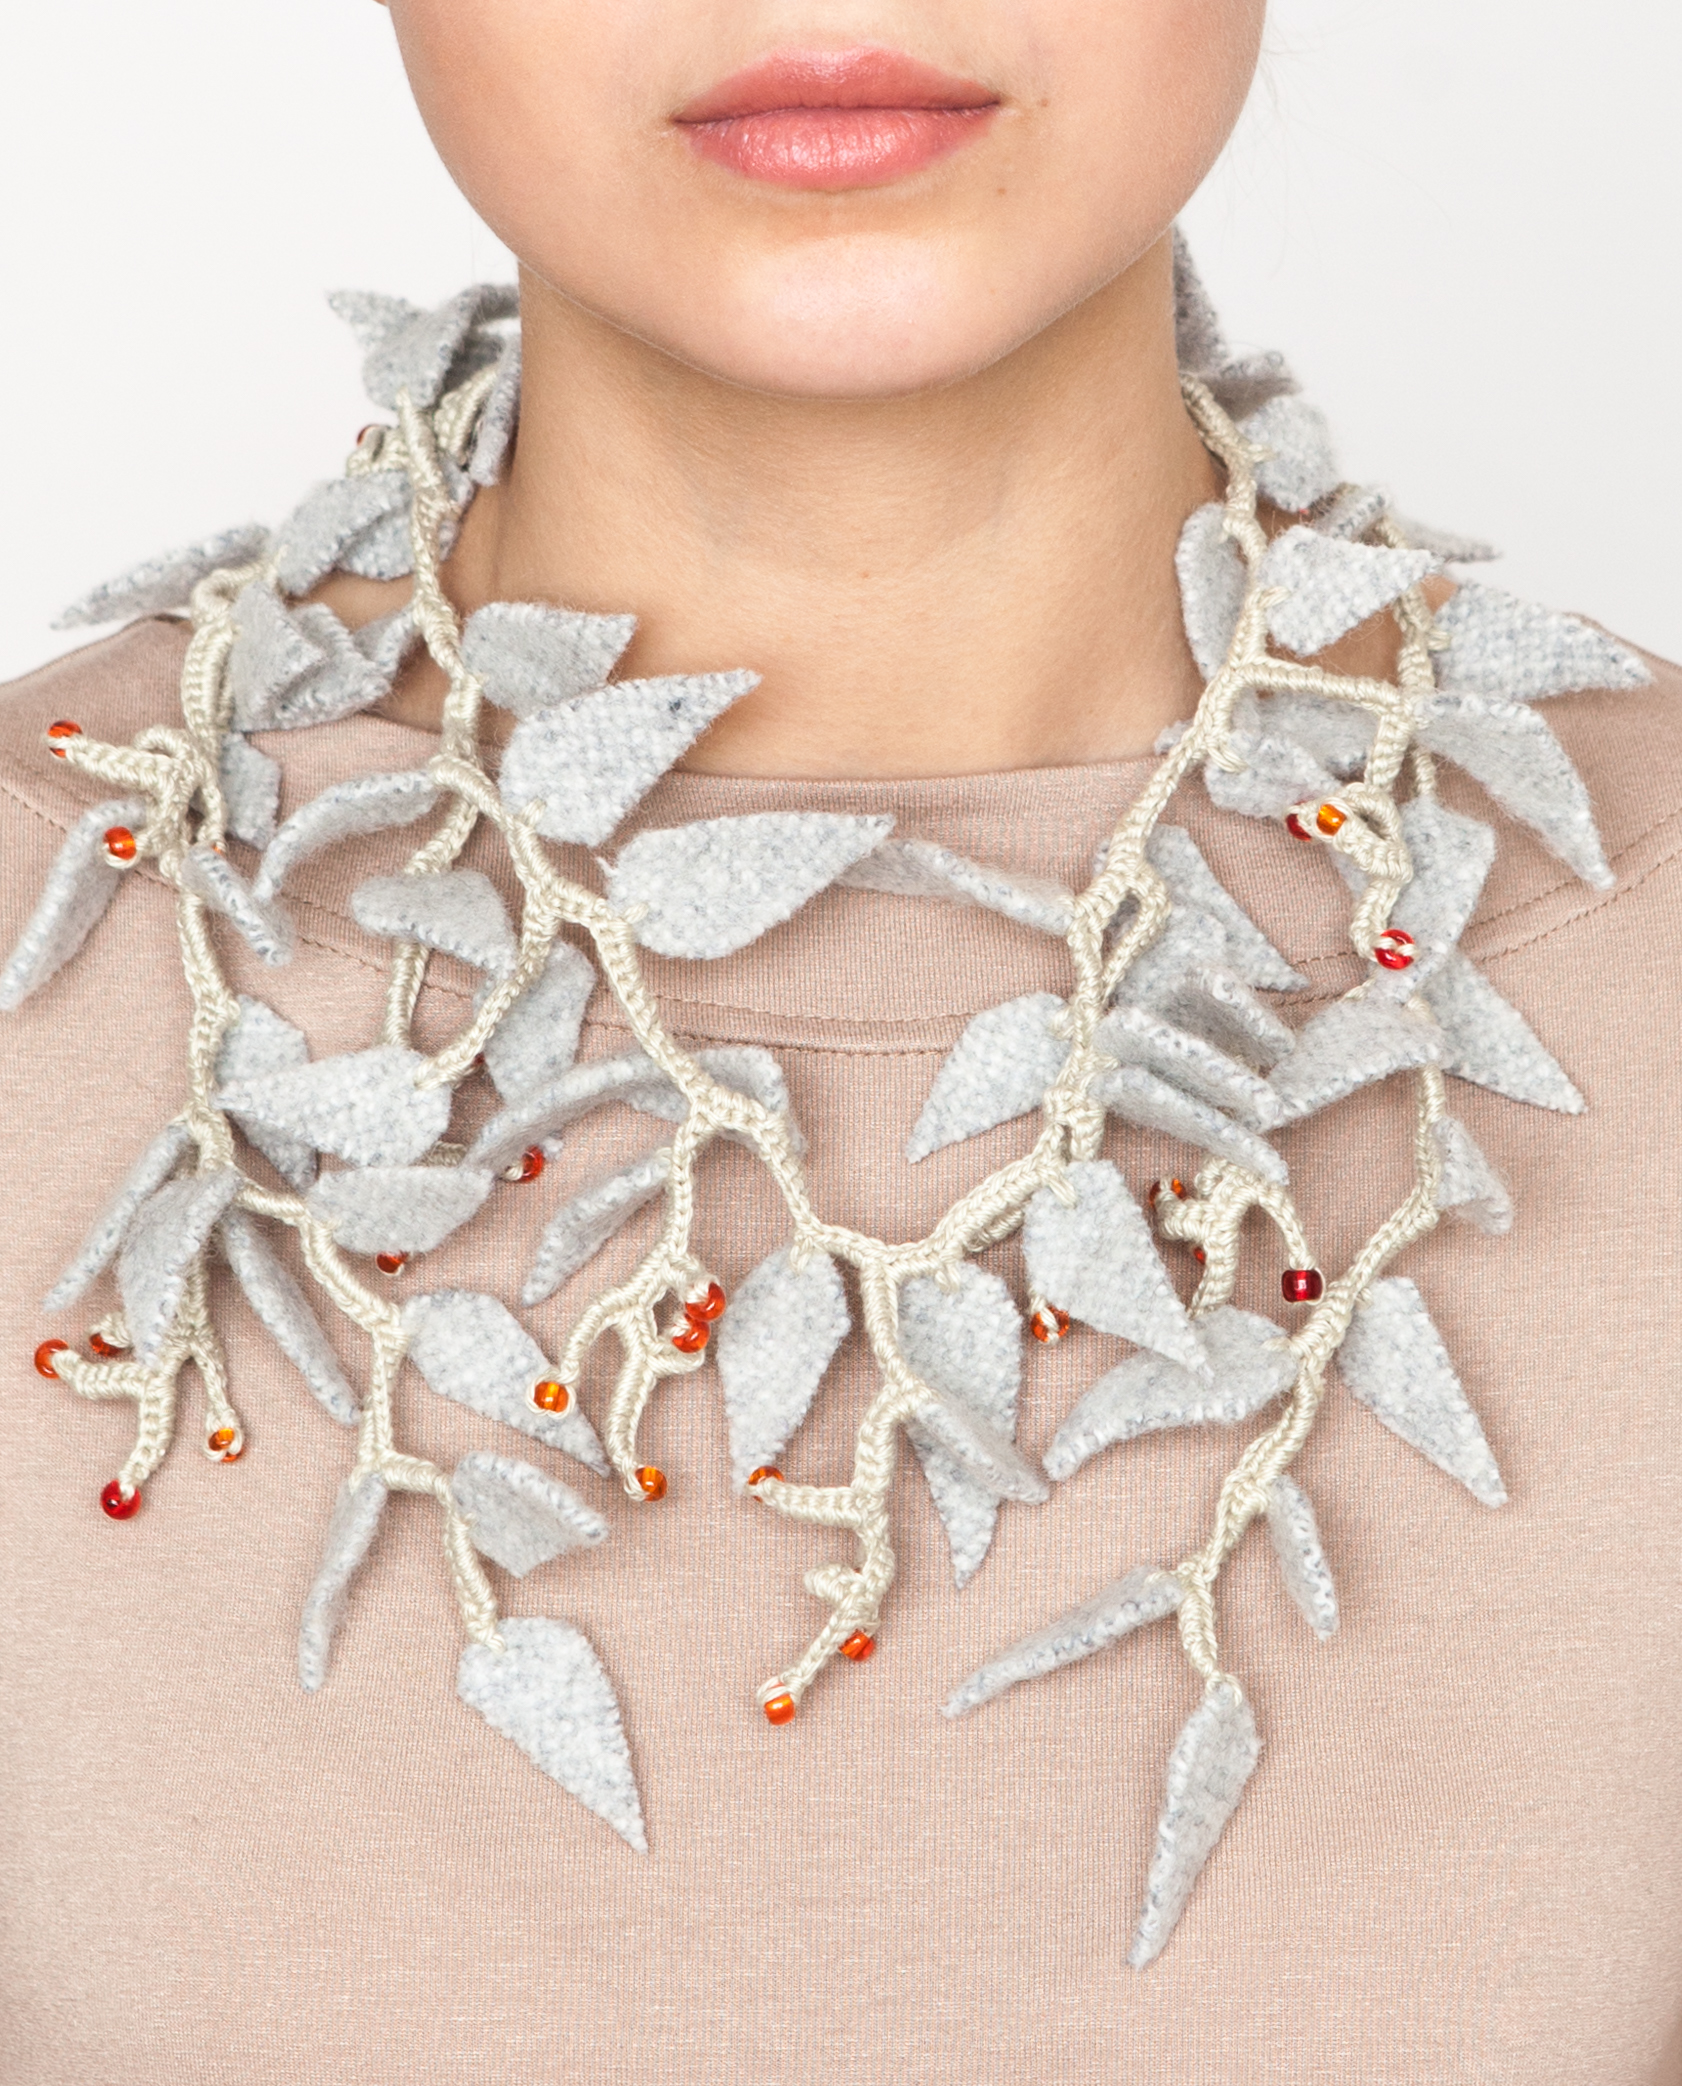 Soft necklace with red berries